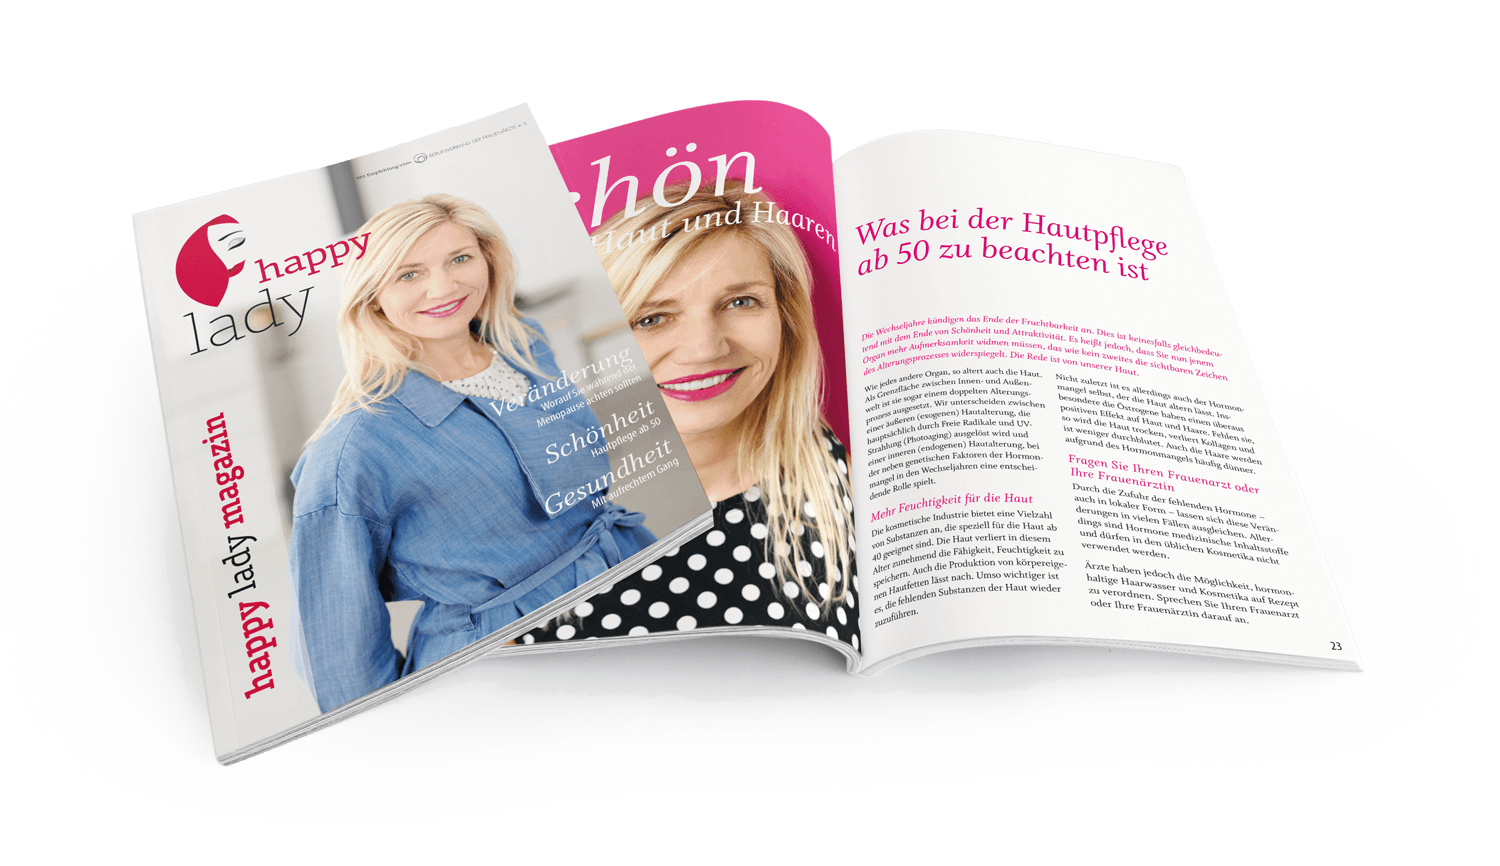 HappyLaday-Magazin, das Informationsmedium für Frauen in der Menopause